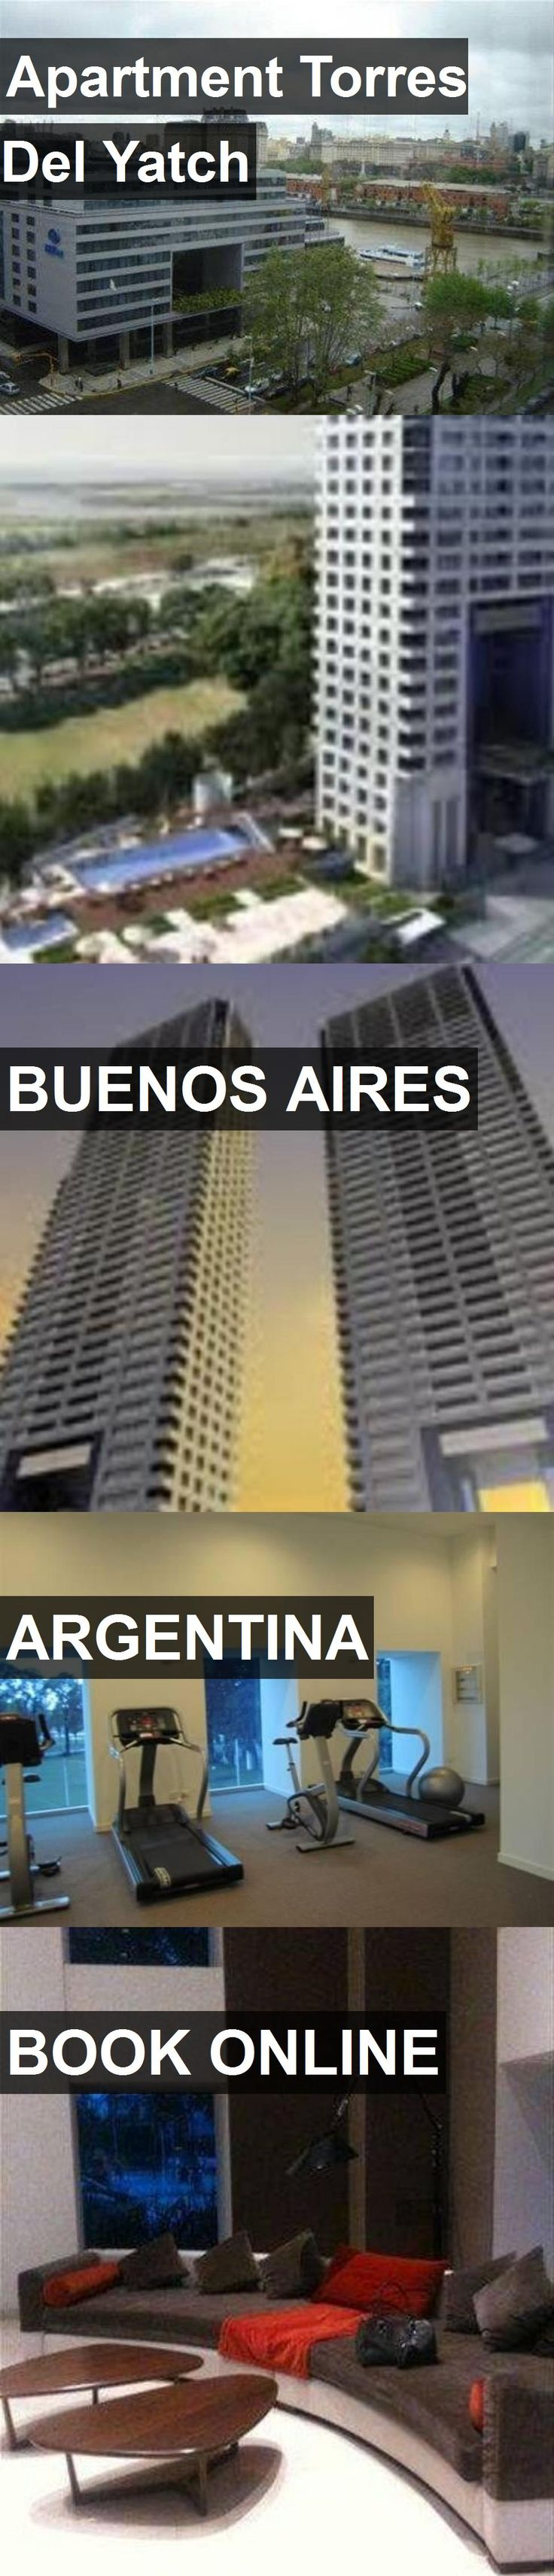 Hotel Apartment Torres Del Yatch in Buenos Aires, Argentina. For more information, photos, reviews and best prices please follow the link. #Argentina #BuenosAires #ApartmentTorresDelYatch #hotel #travel #vacation